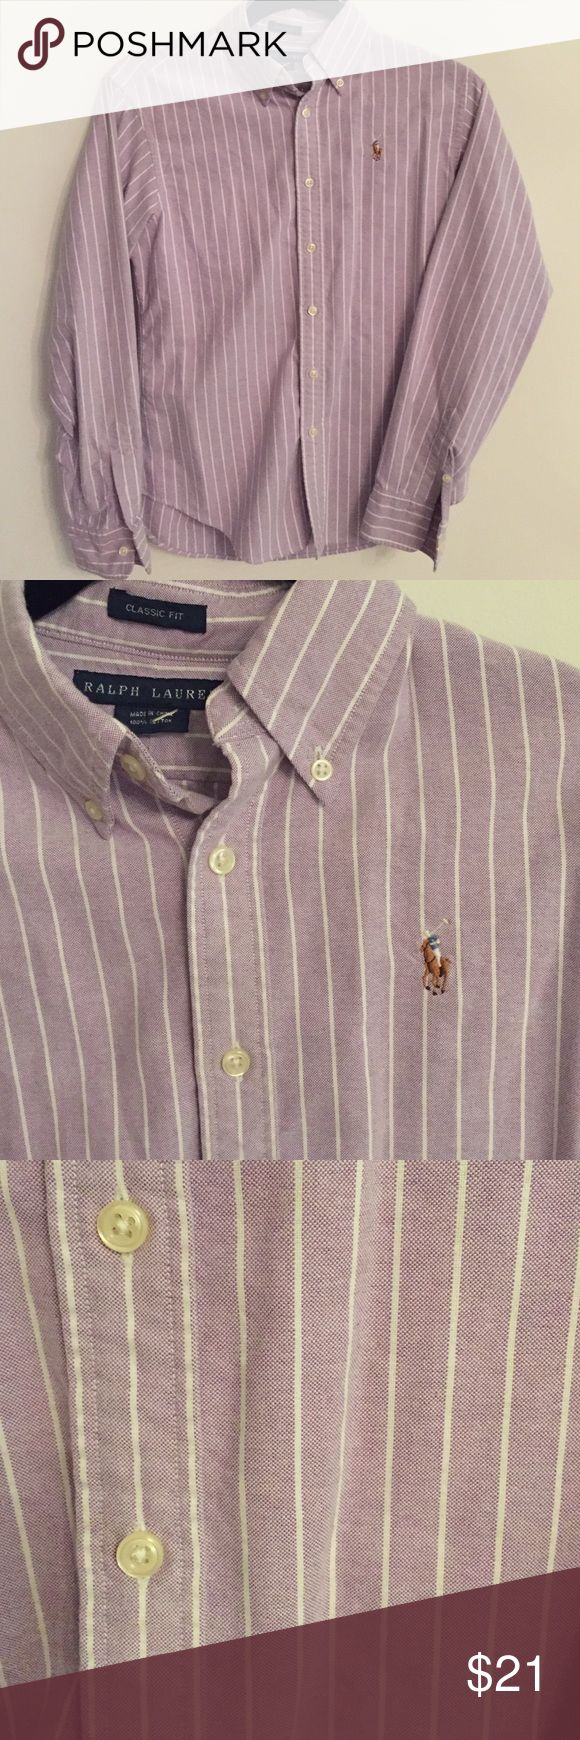 Ralph Lauren purple pinstriped oxford Classic fit button down women's top. Light purple with white stripes Ralph Lauren Tops Button Down Shirts